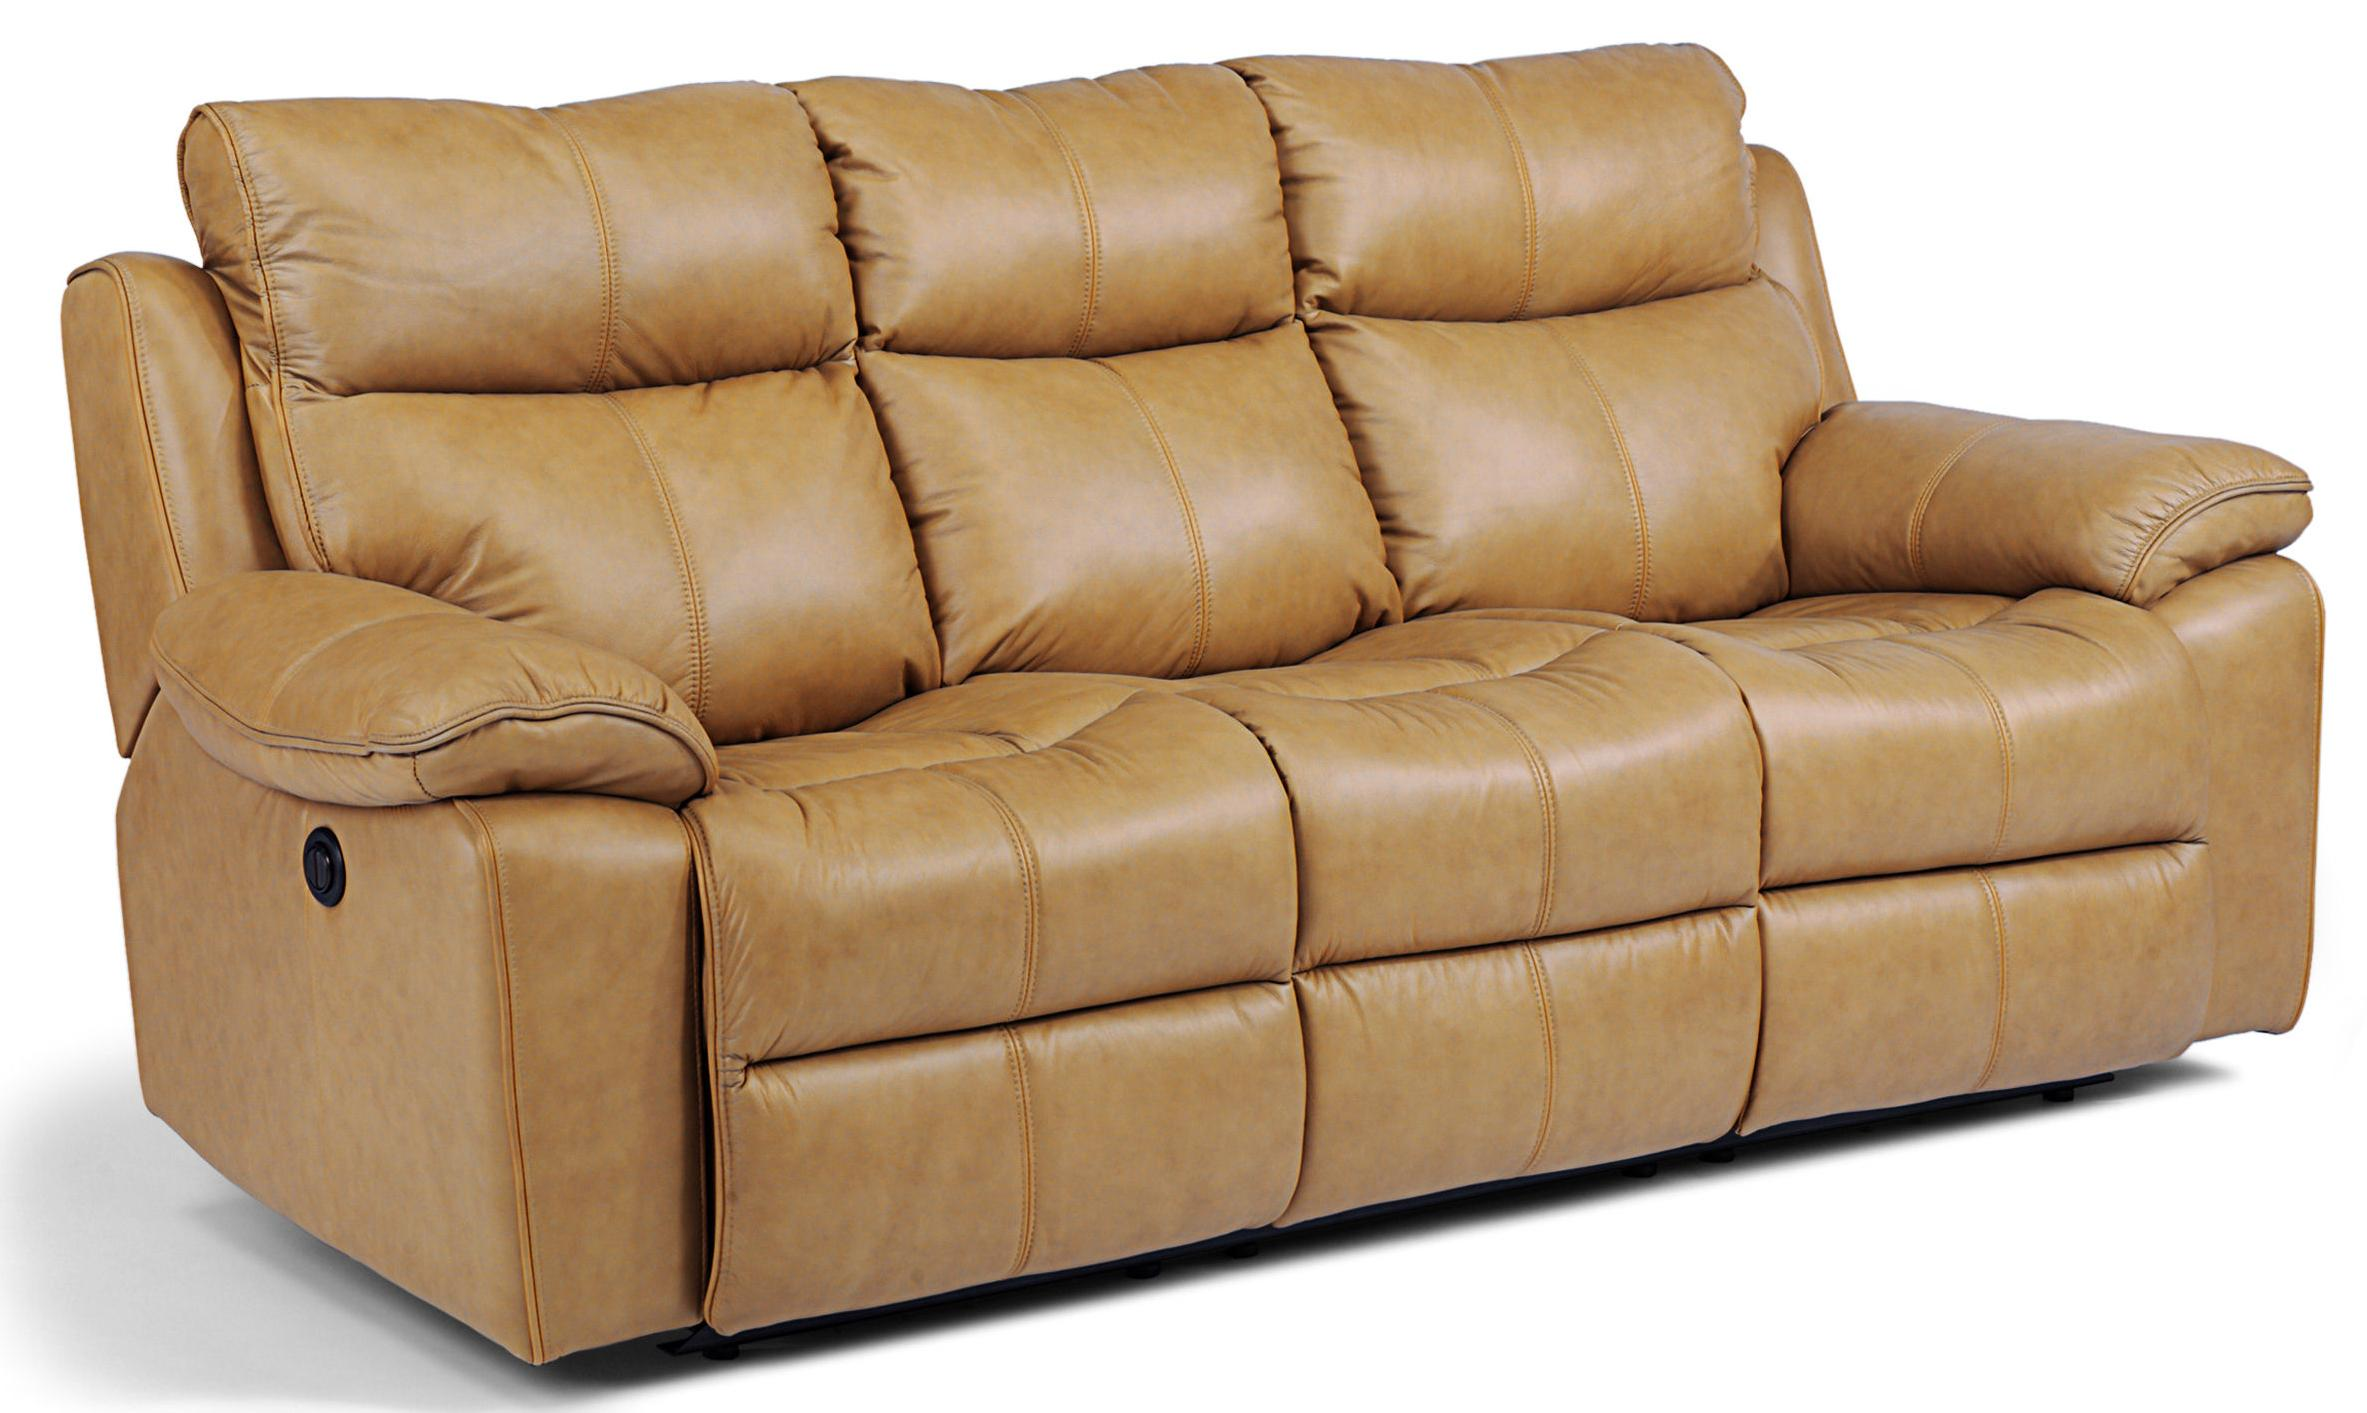 Flexsteel Latitudes Julio Power Reclining Sofa with Bustle Backs